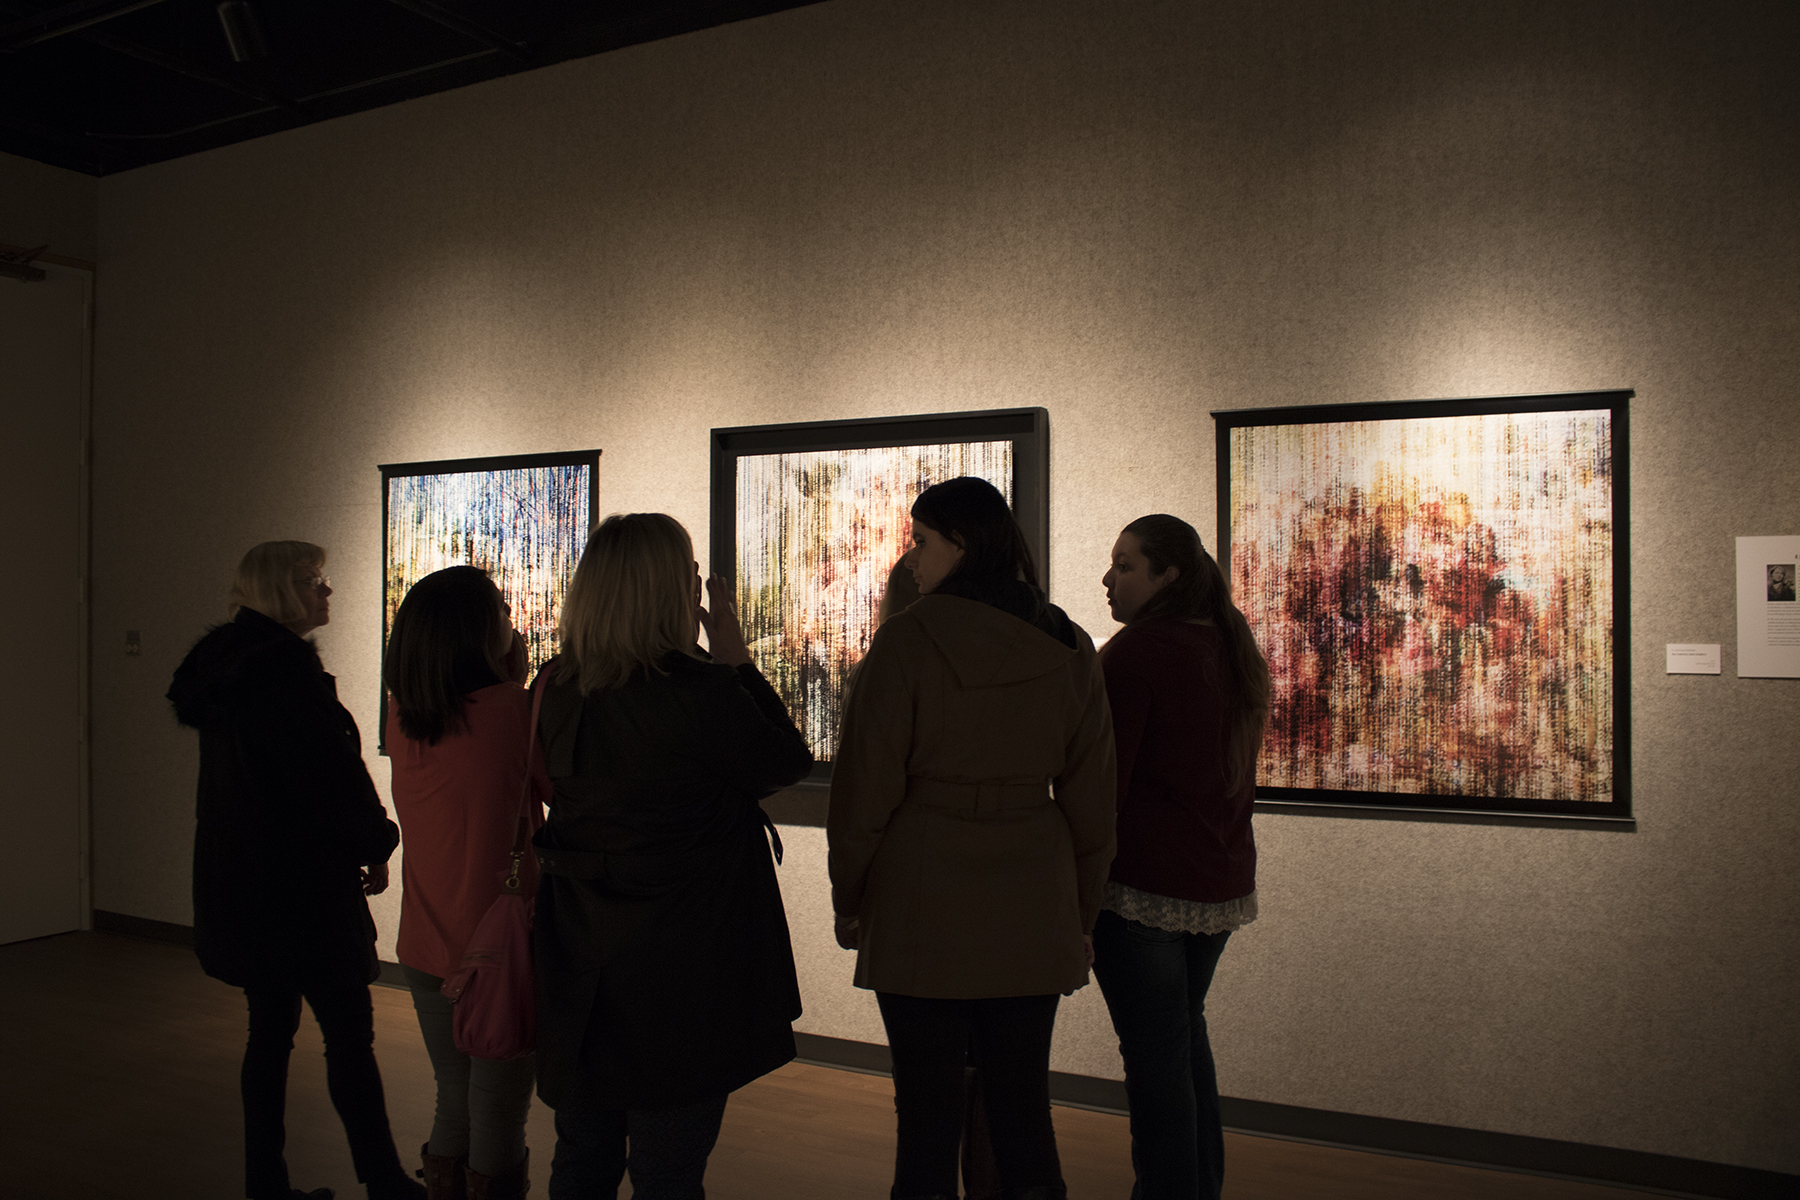 Jan. 21, 2016 - Guests viewing the artwork during reception for the Baylor Art Department Faculty Exhibition.